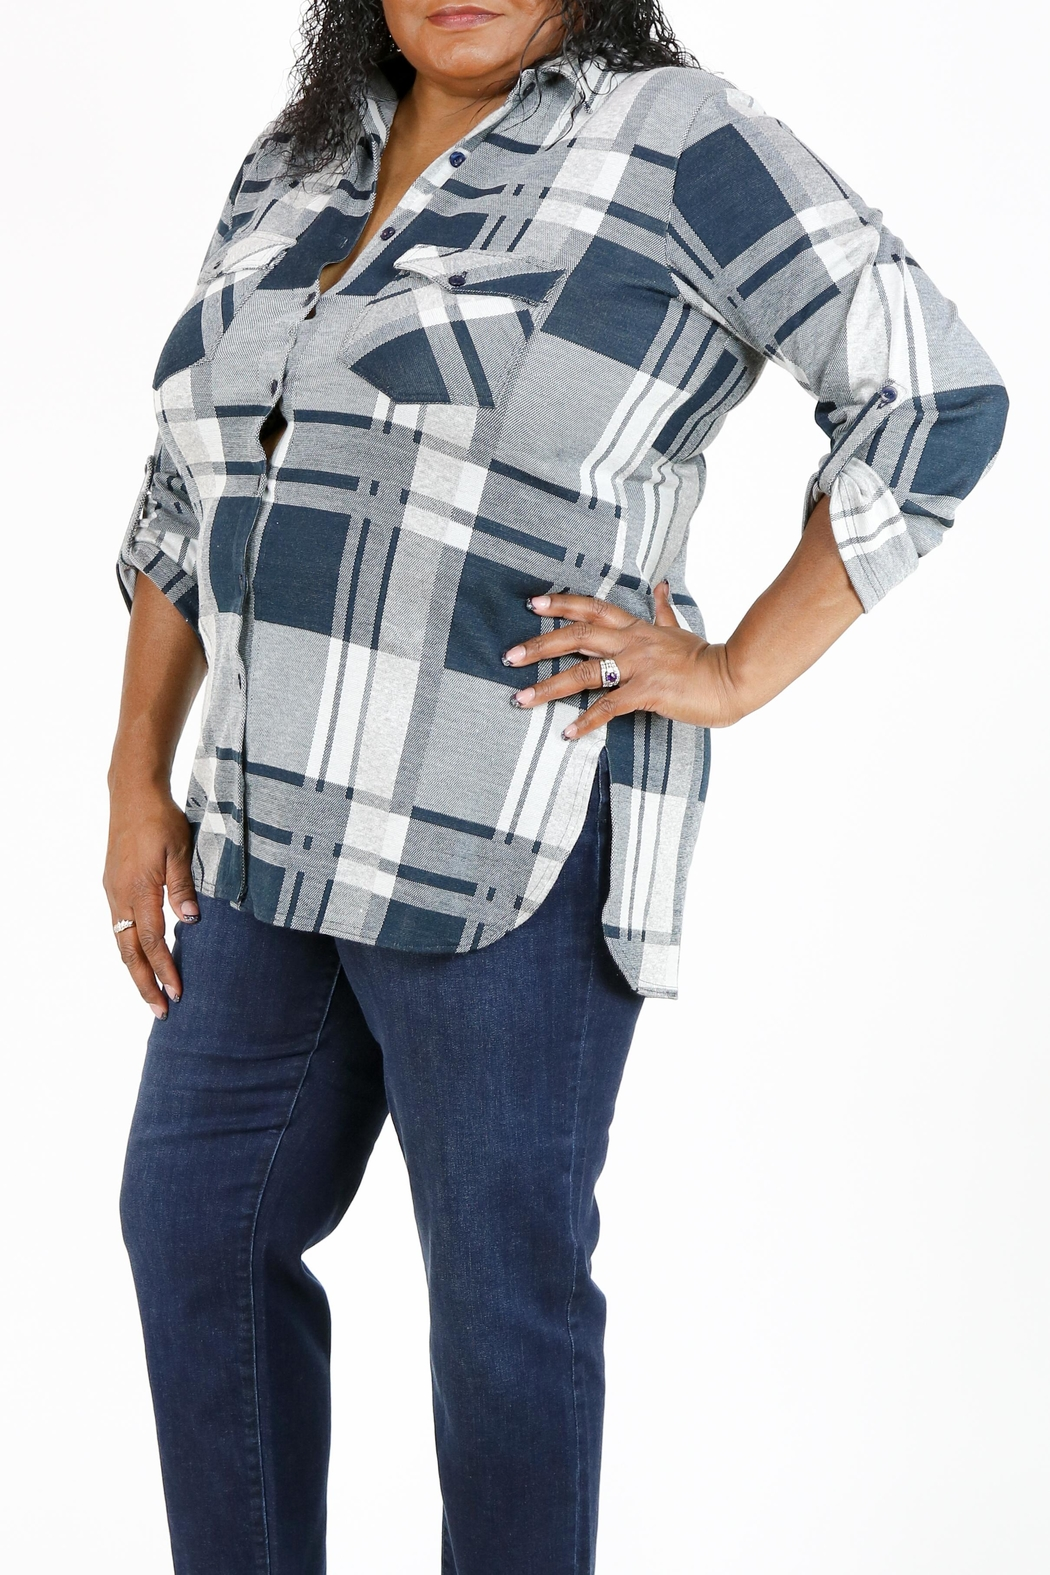 Curvy Fashion USA Plus-Size Plaid Shirt - Back Cropped Image